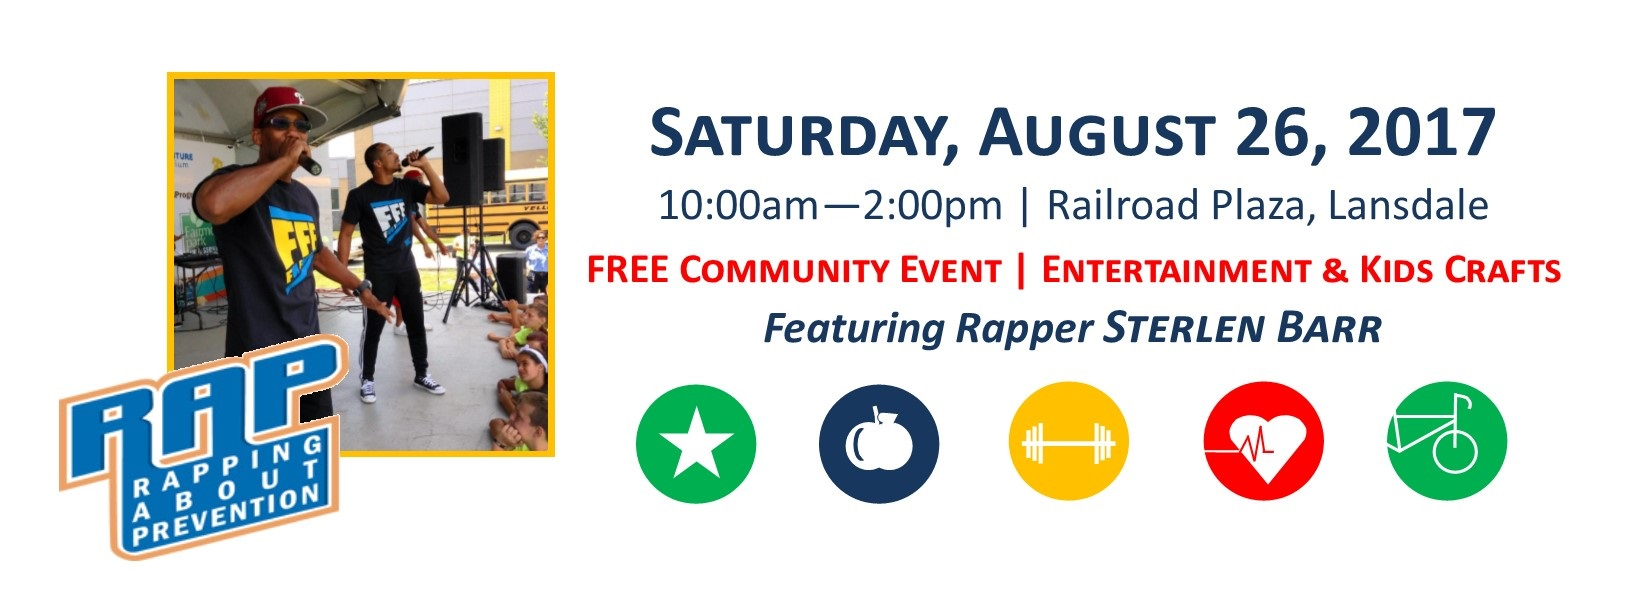 Health and Wellness Fair Saturday August 26 in Conjunction with Lansdale Founders Day. Featuring Rapper Sterlen Barr and Rapping About Prevention.